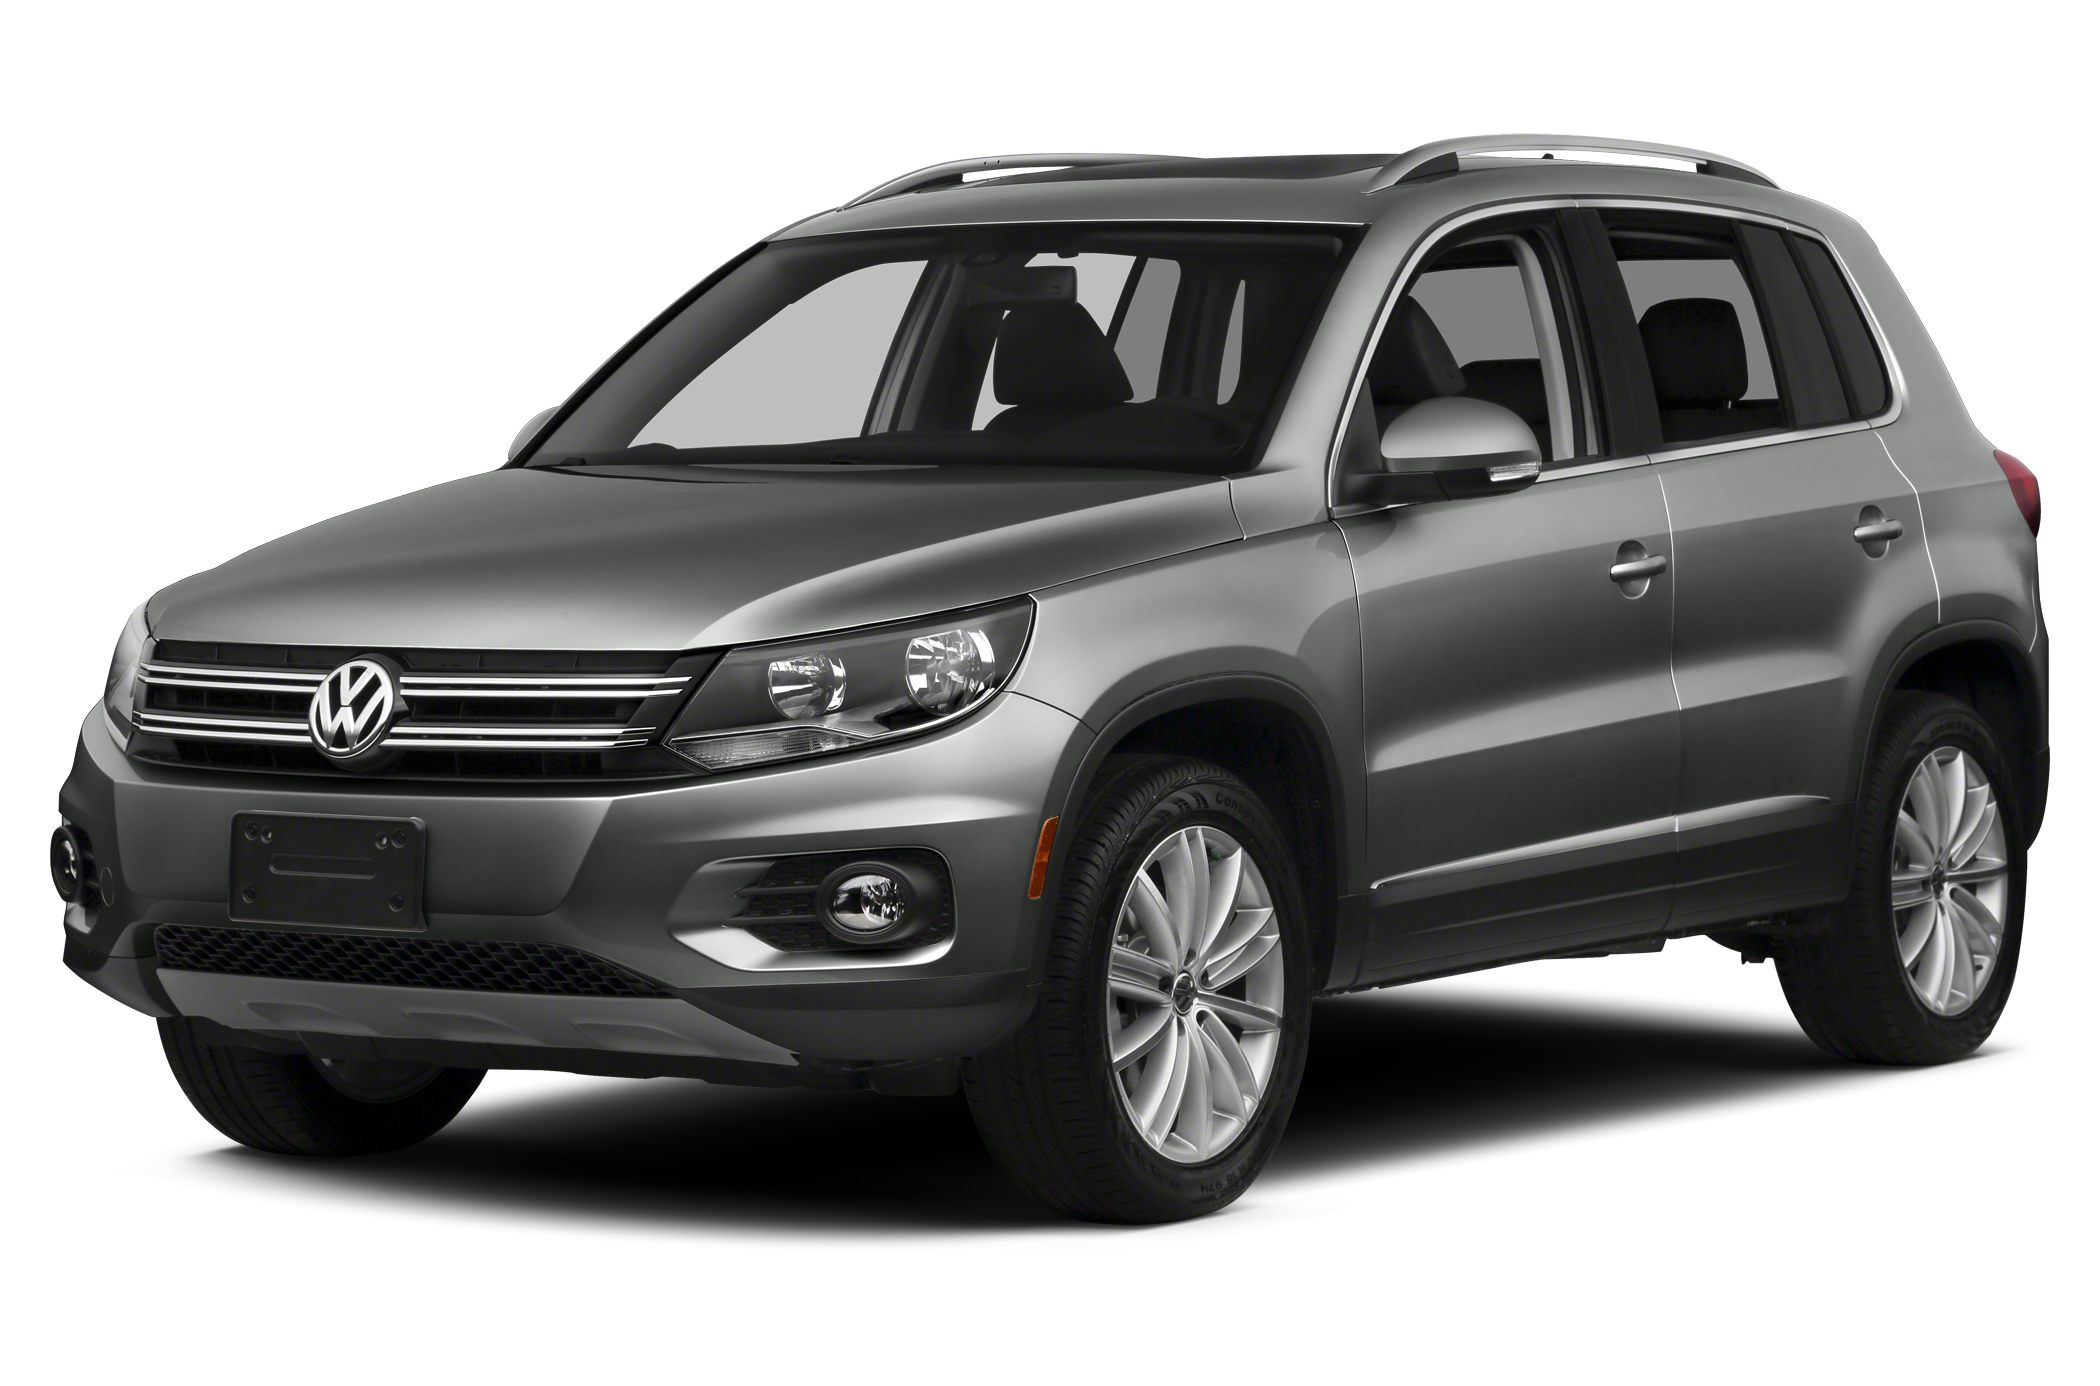 2013 Volkswagen Tiguan S SUV for sale in Wilmington for $17,995 with 36,042 miles